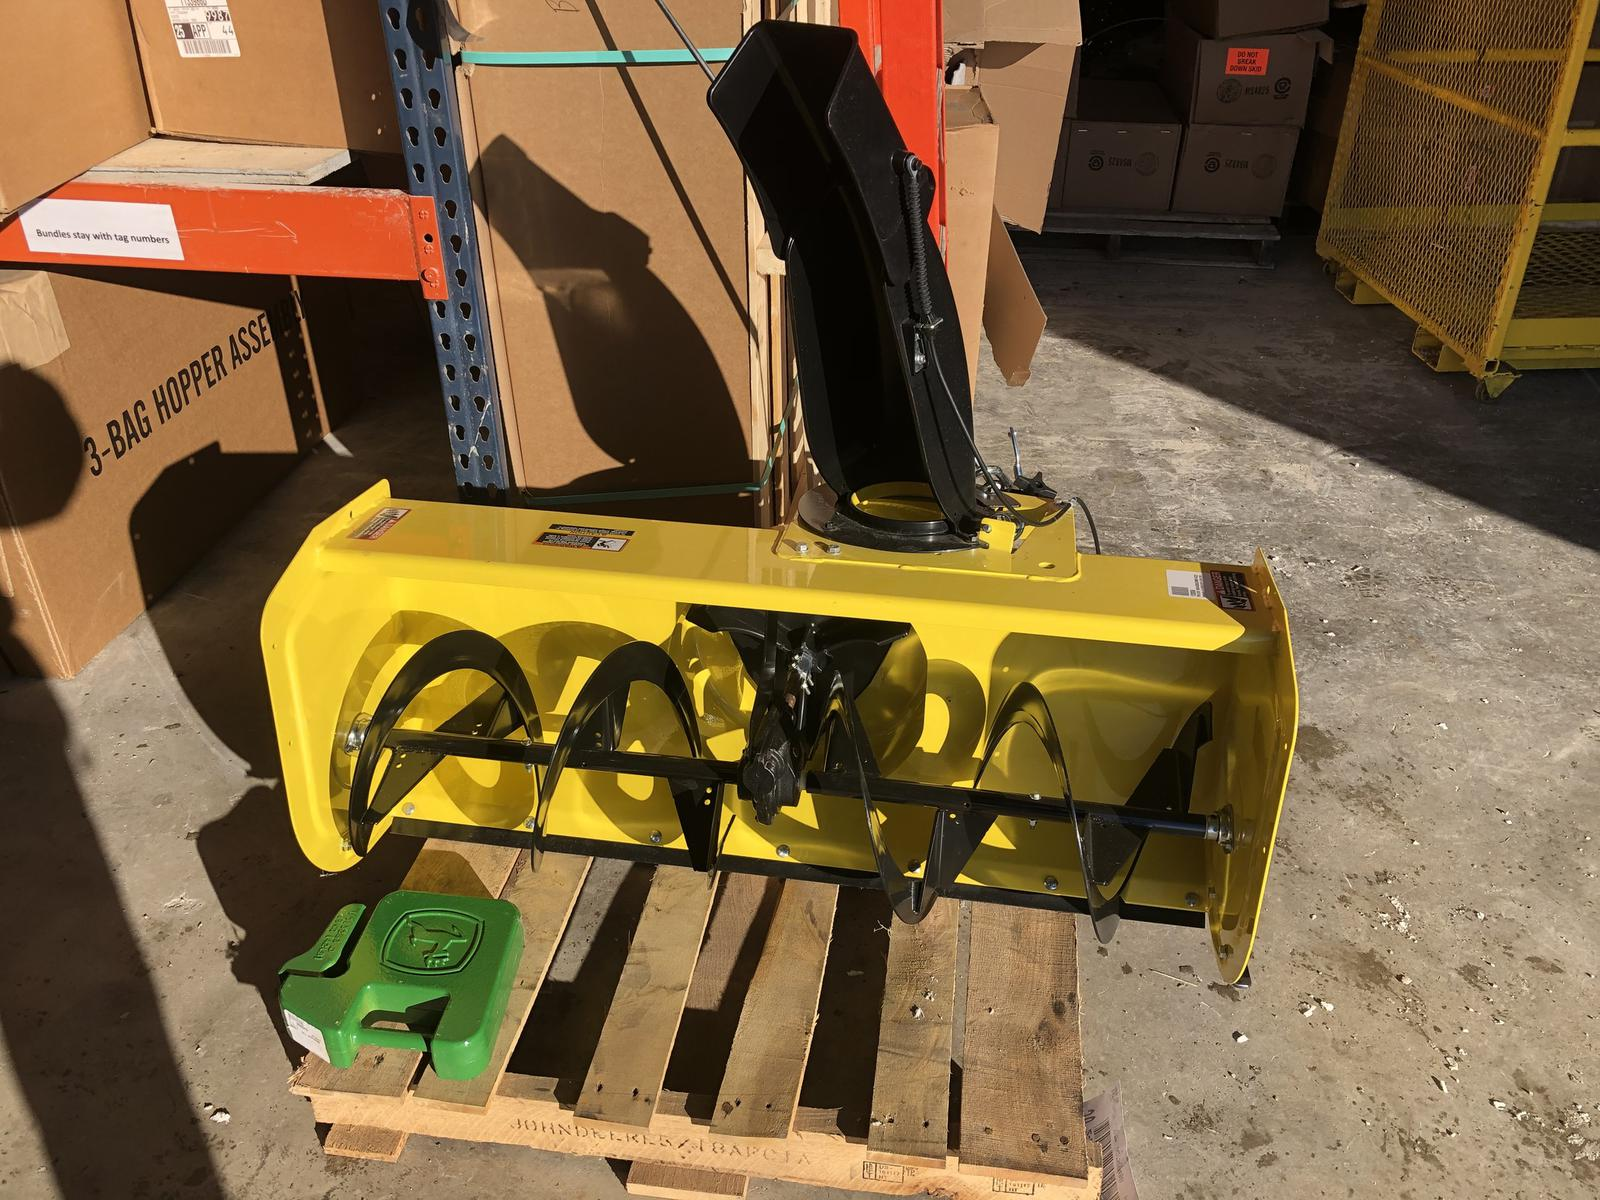 Inventory from John Deere and Loftness Eis Implement Two